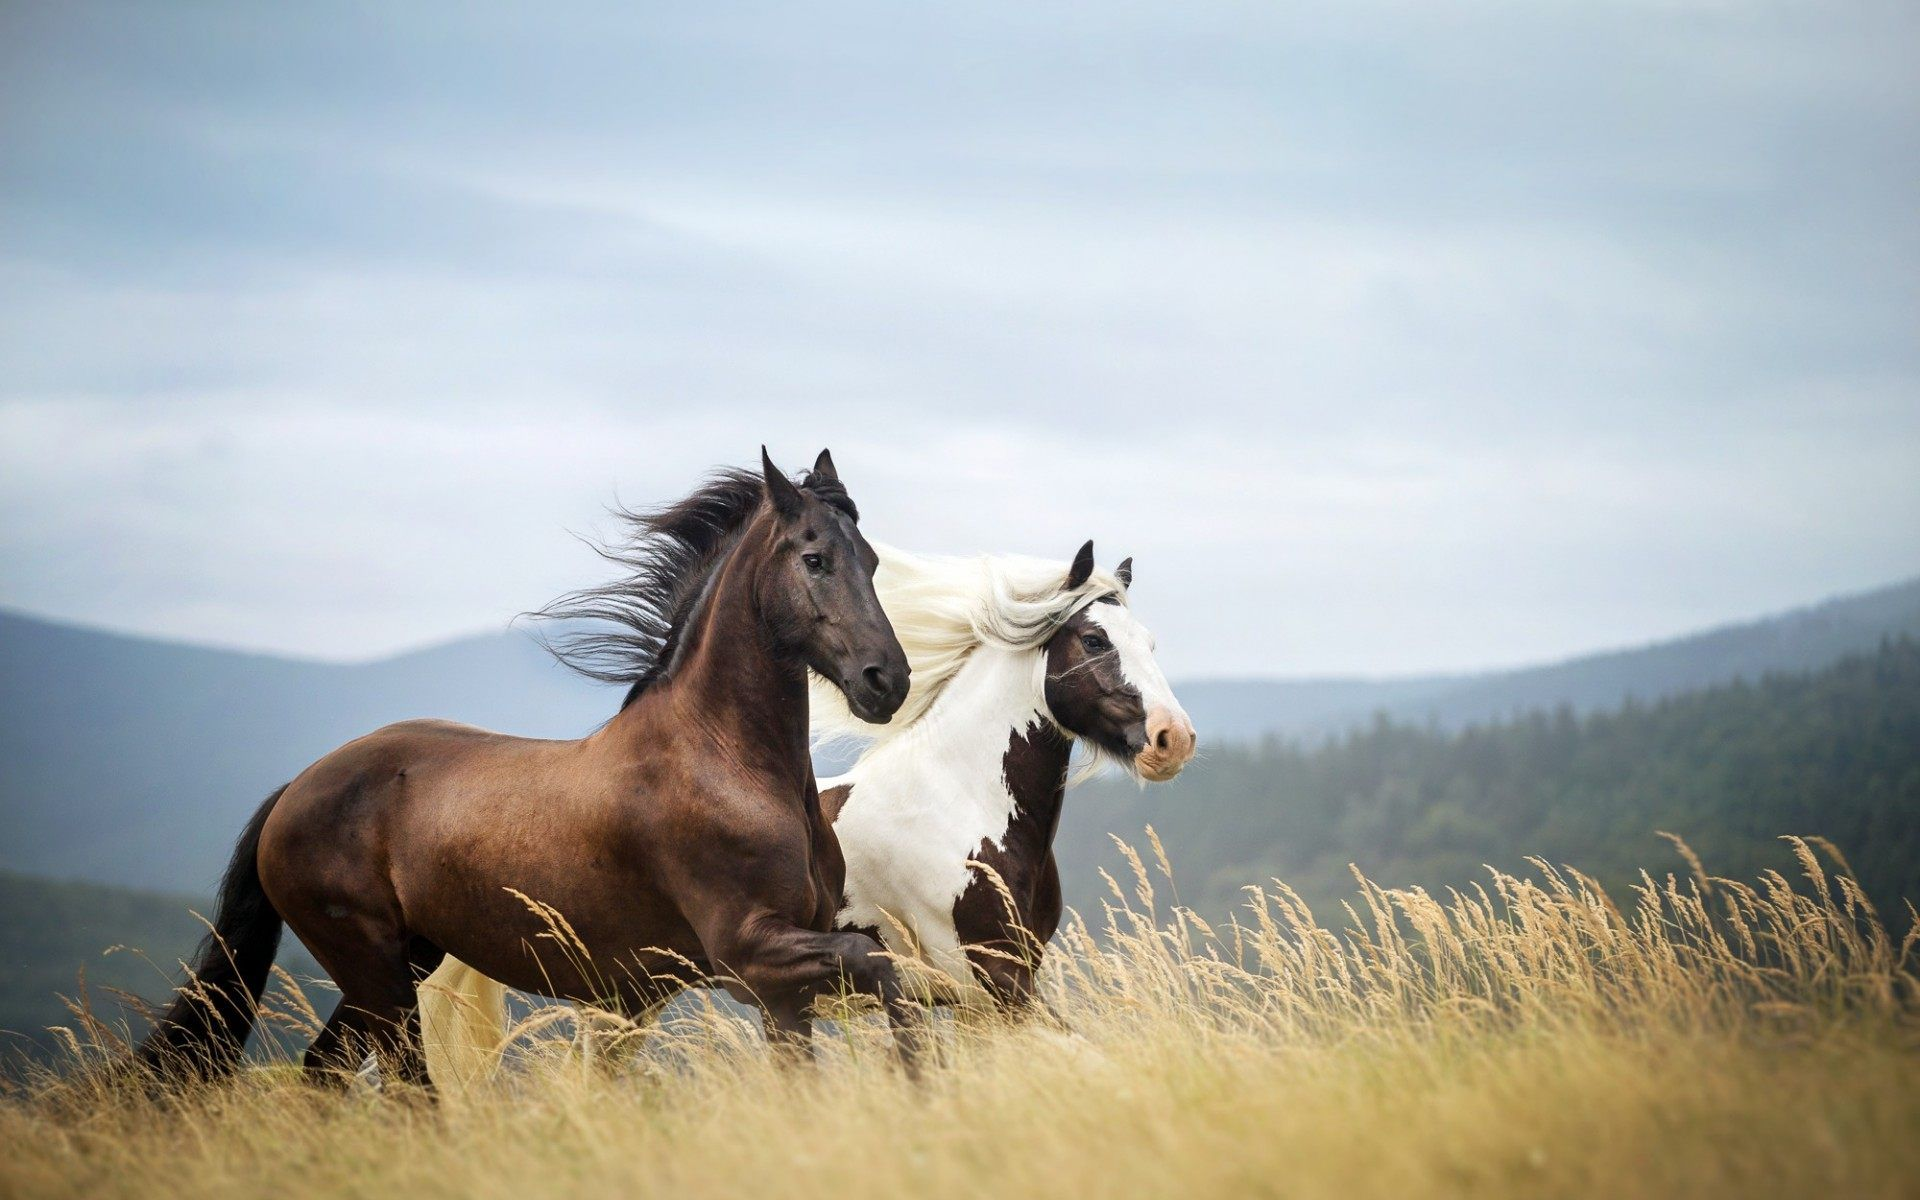 Amazing Wallpaper Horse Nature - ecf7c69a588b95bb0454ef92540c700f  Collection_46378.jpg